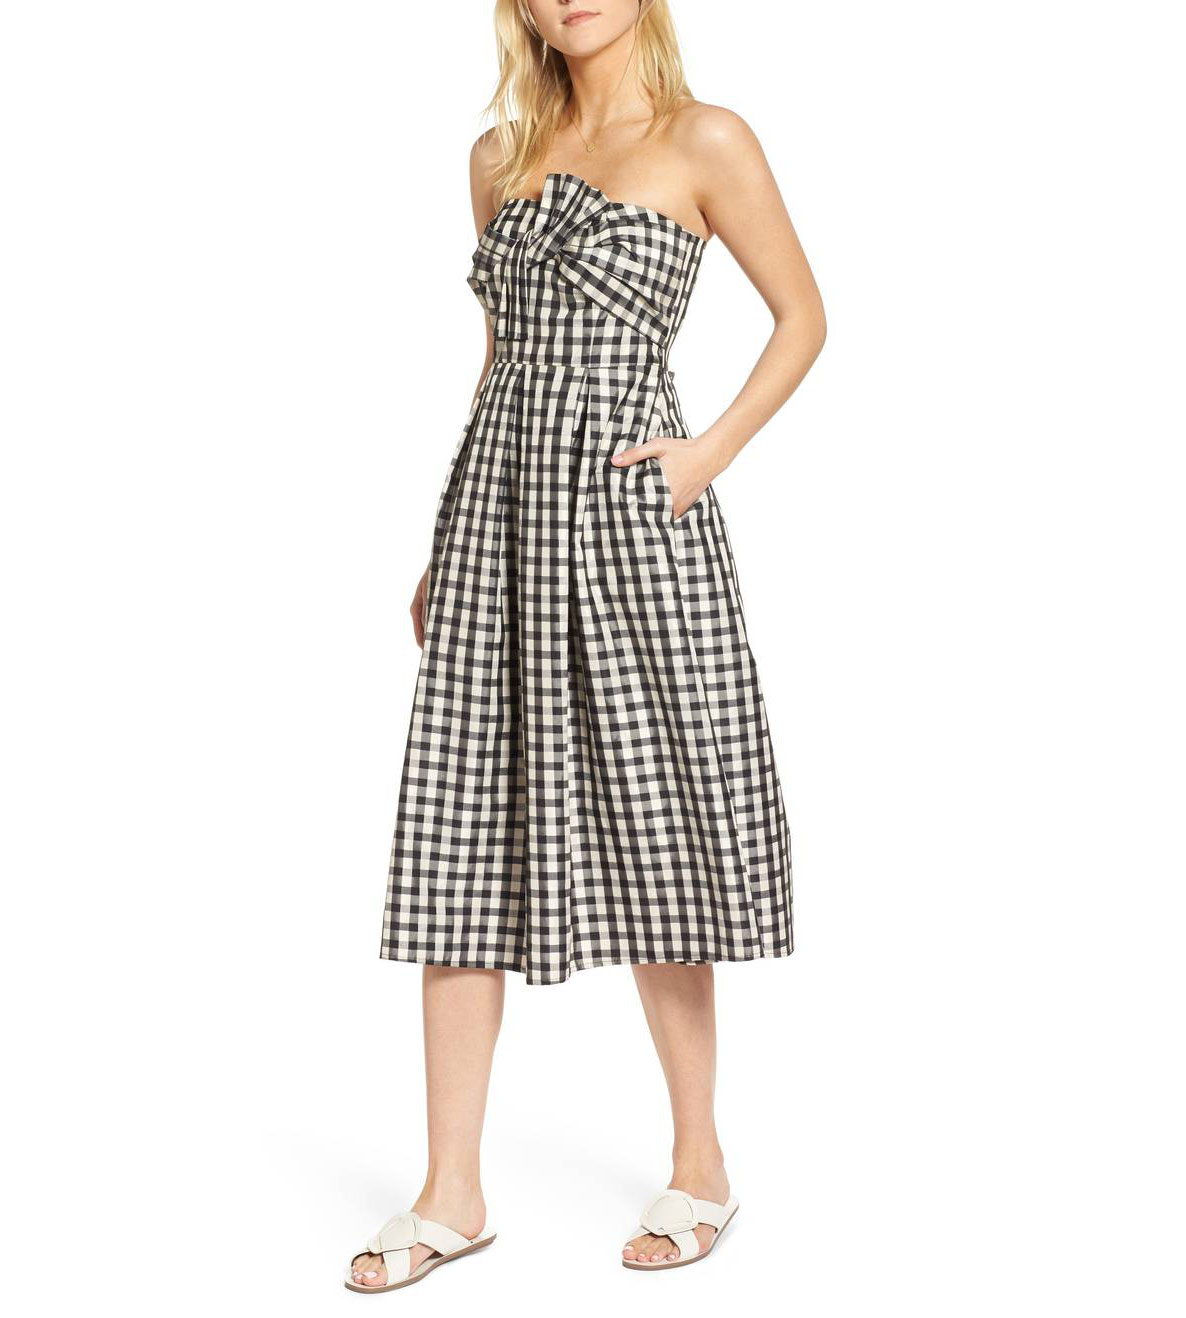 1901 Bow Front Strapless Dress